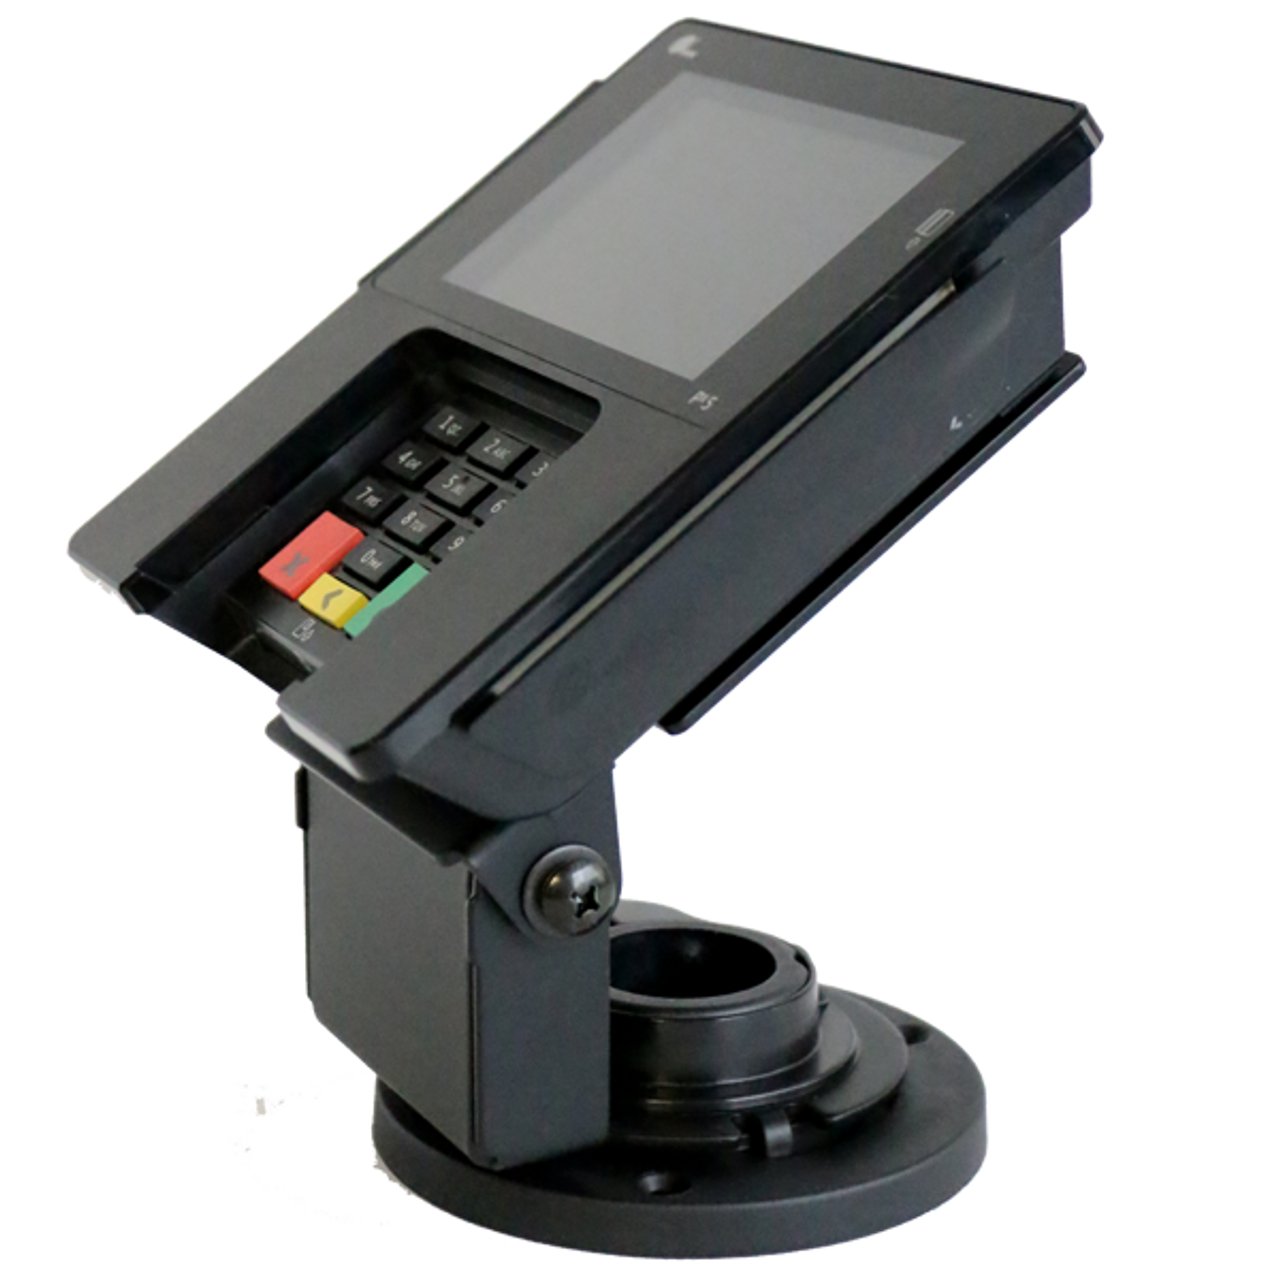 Low Profile PAX PX5 PX7 Credit Card Stand by Swivel Stands